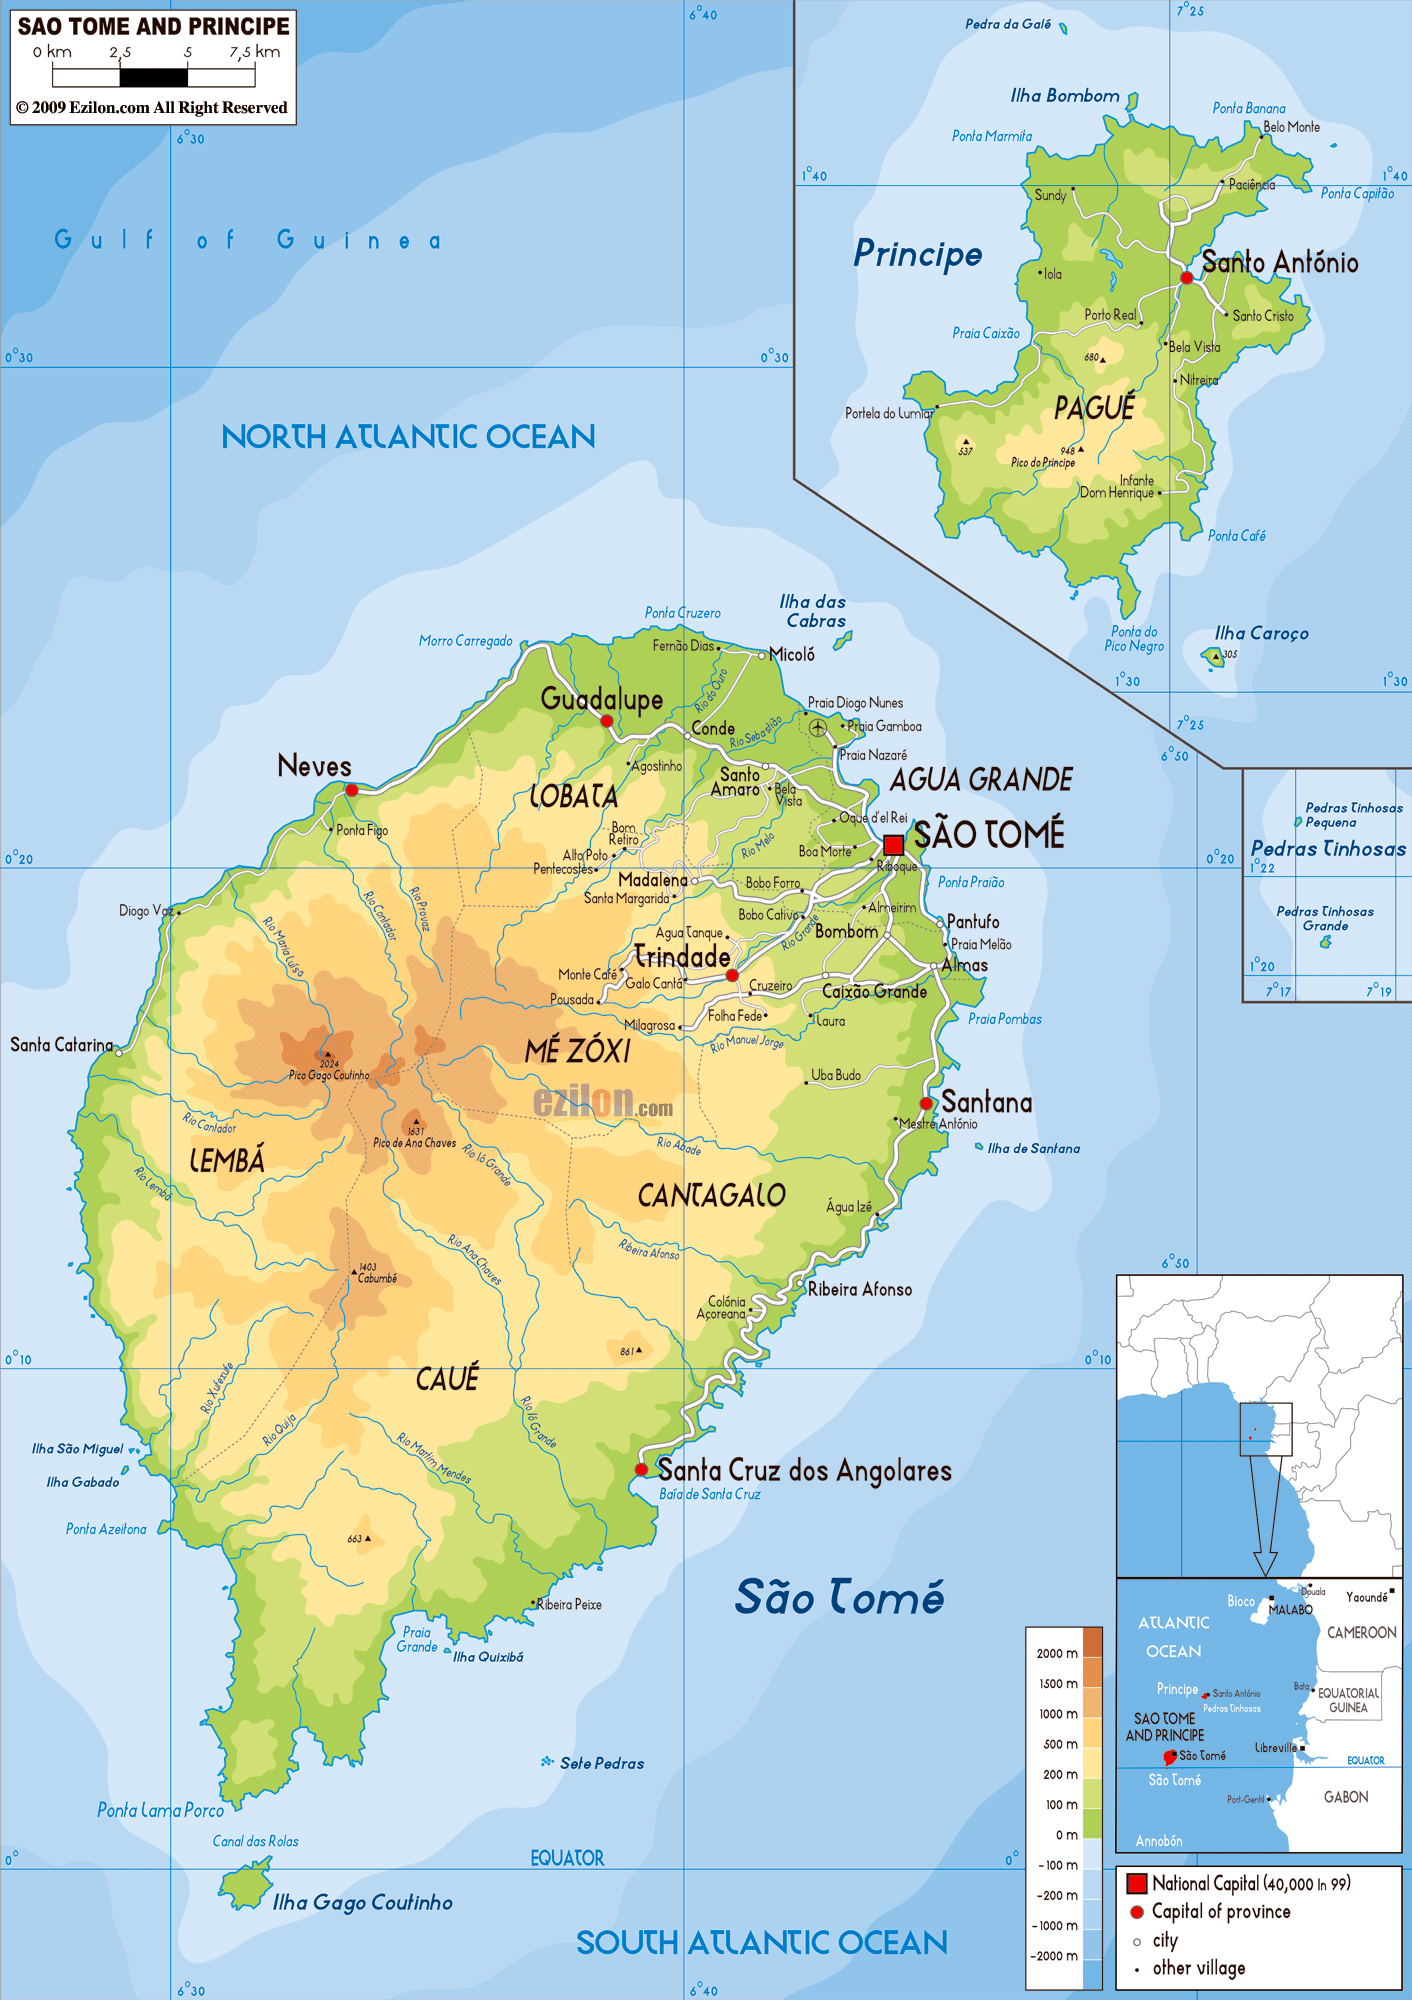 Large physical map of Sao Tome and Principe with roads ... on bahia on world map, united republic of tanzania on world map, isle of man on world map, turks and caicos islands on world map, northern mariana islands on world map, british virgin islands on world map, antigua and barbuda on world map, manama on world map, freetown on world map, cocos islands on world map, reunion on world map, sao tome e principe flag, british guiana on world map, democratic republic of the congo on world map, saint kitts and nevis on world map, mayotte on world map, holy see on world map, republic of korea on world map, principe island map, northern ireland on world map,